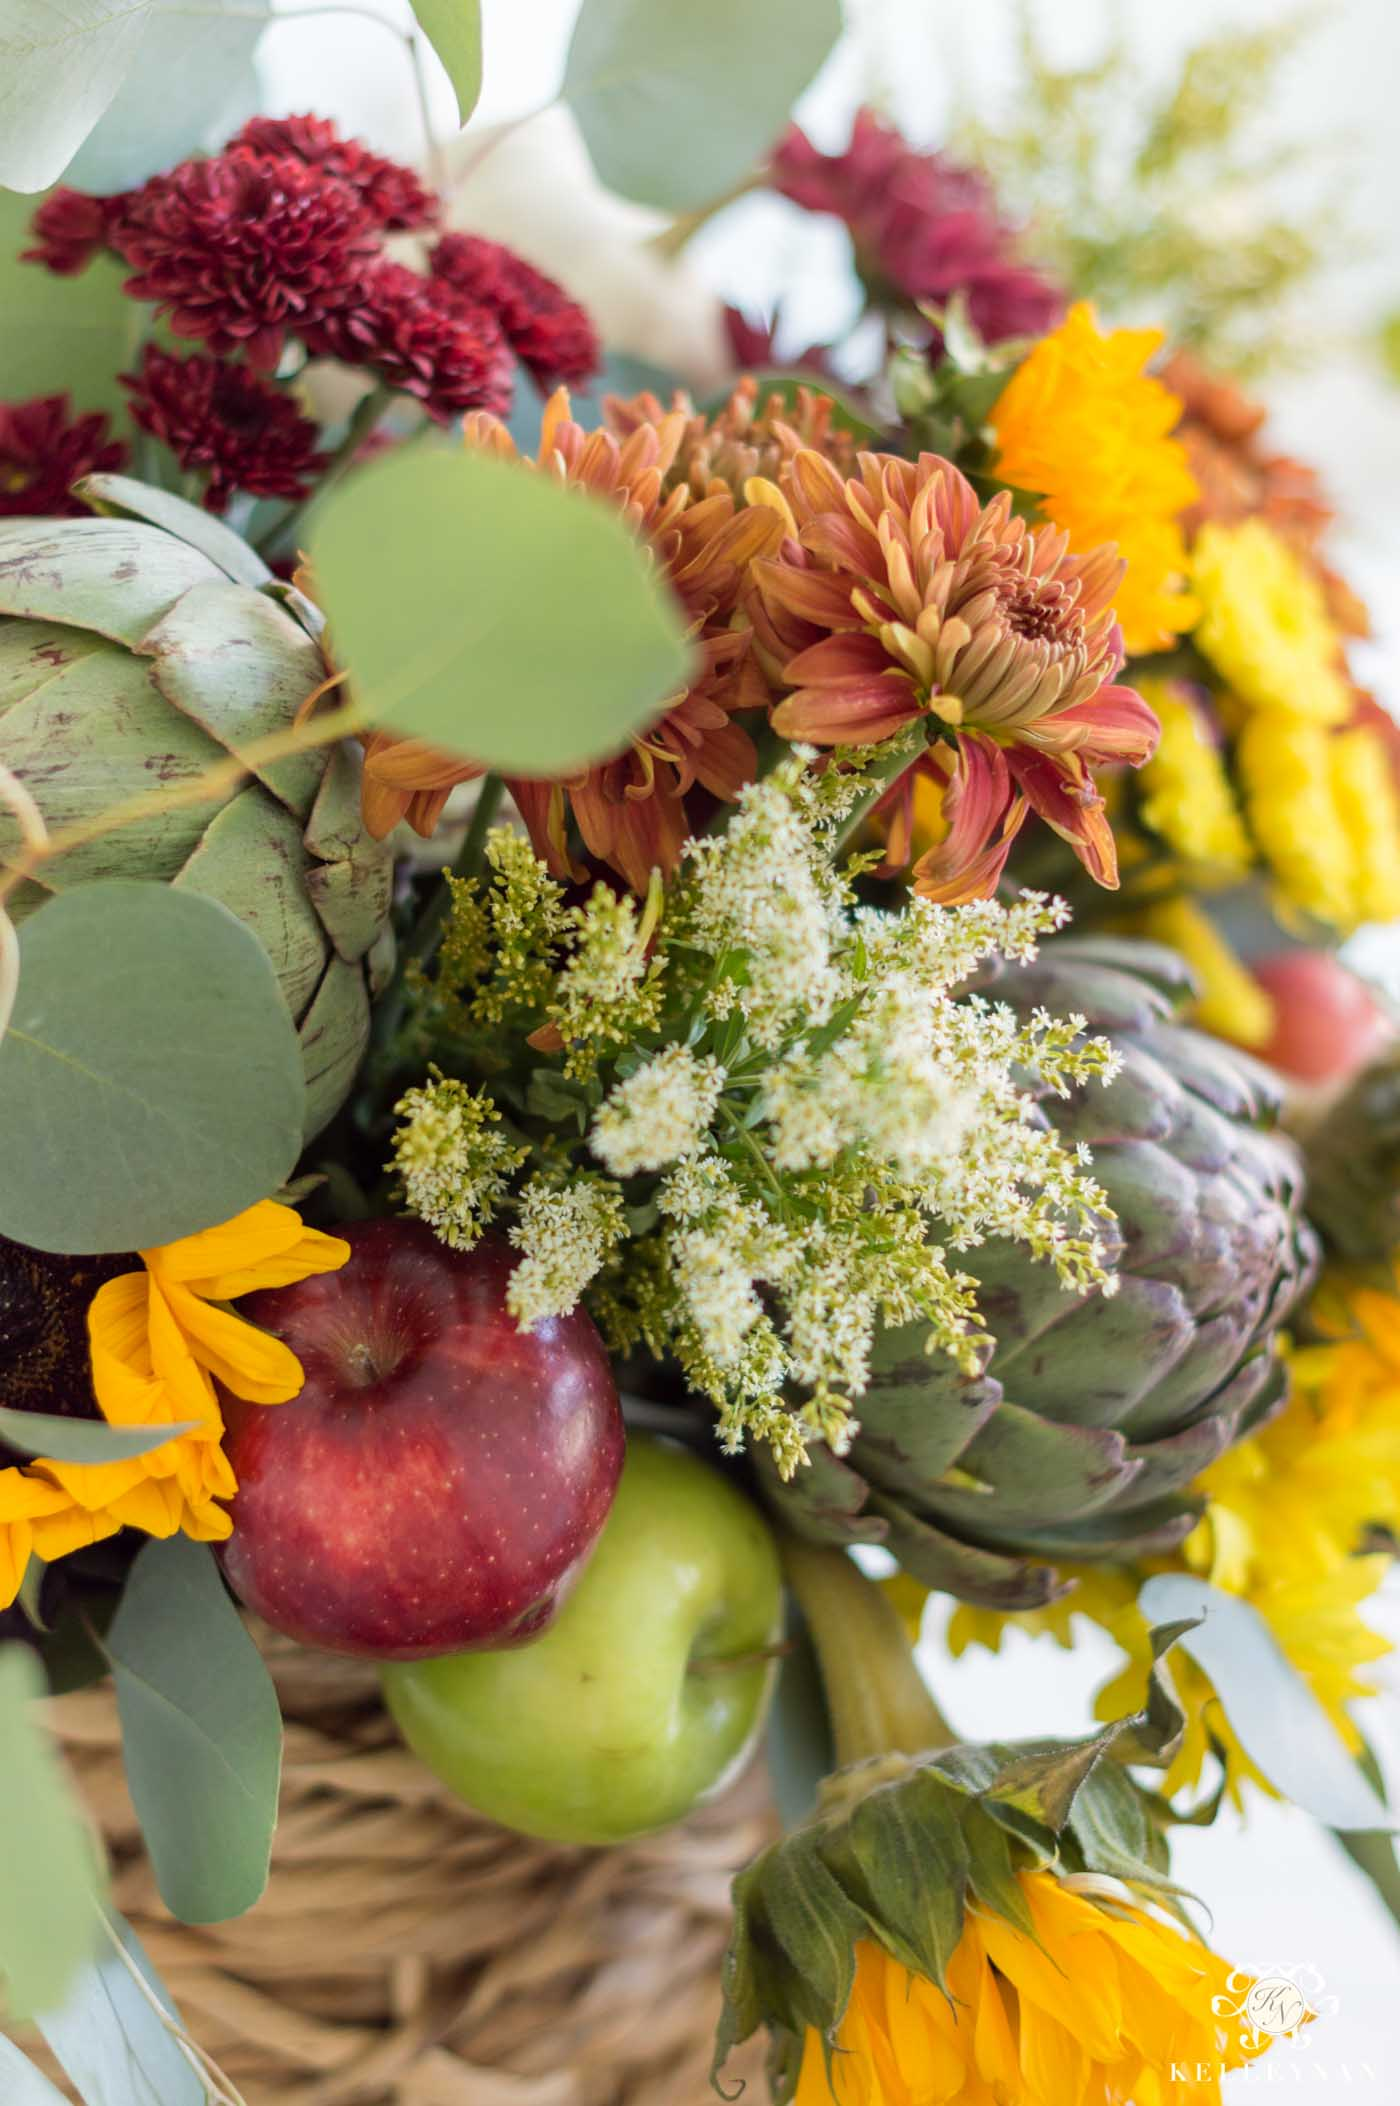 How to Arrange Flowers for a Fall Centerpiece (full tutorial!)